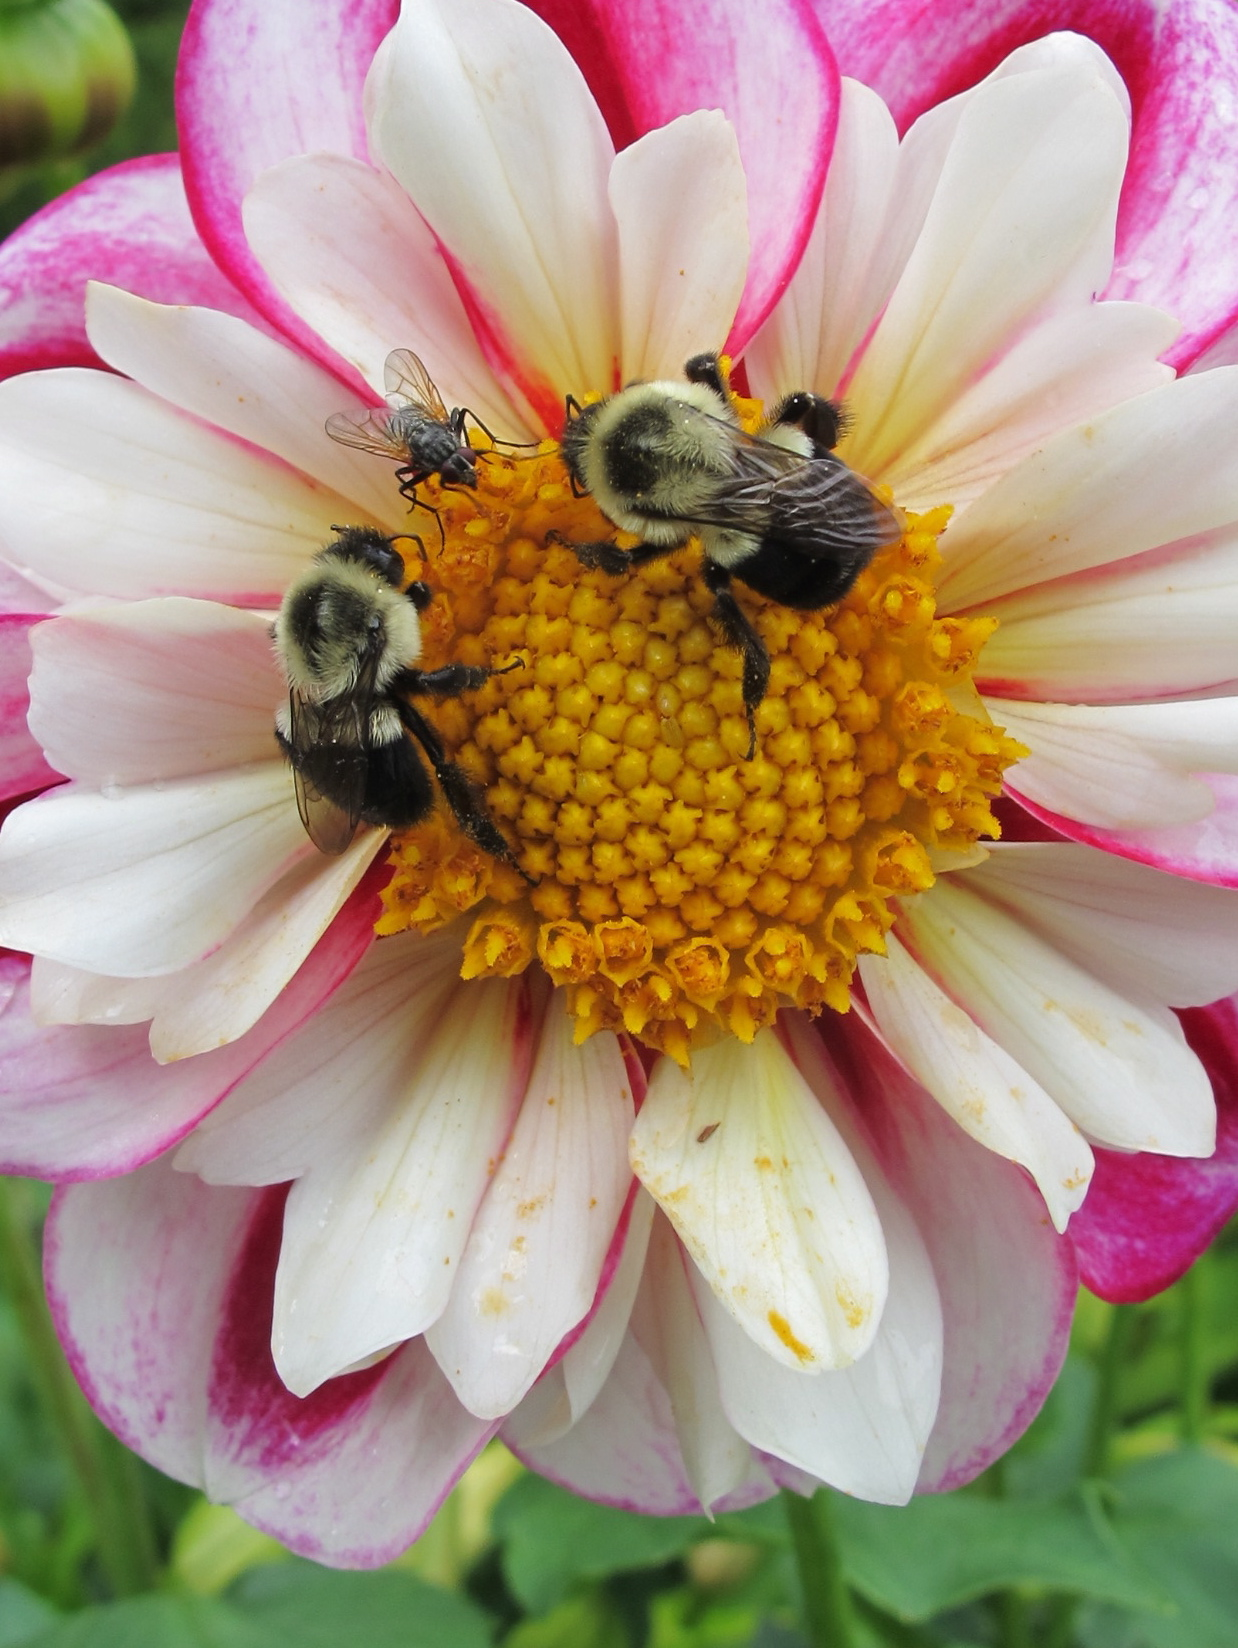 Flies aren't as beloved as bees, but both are pollinators.